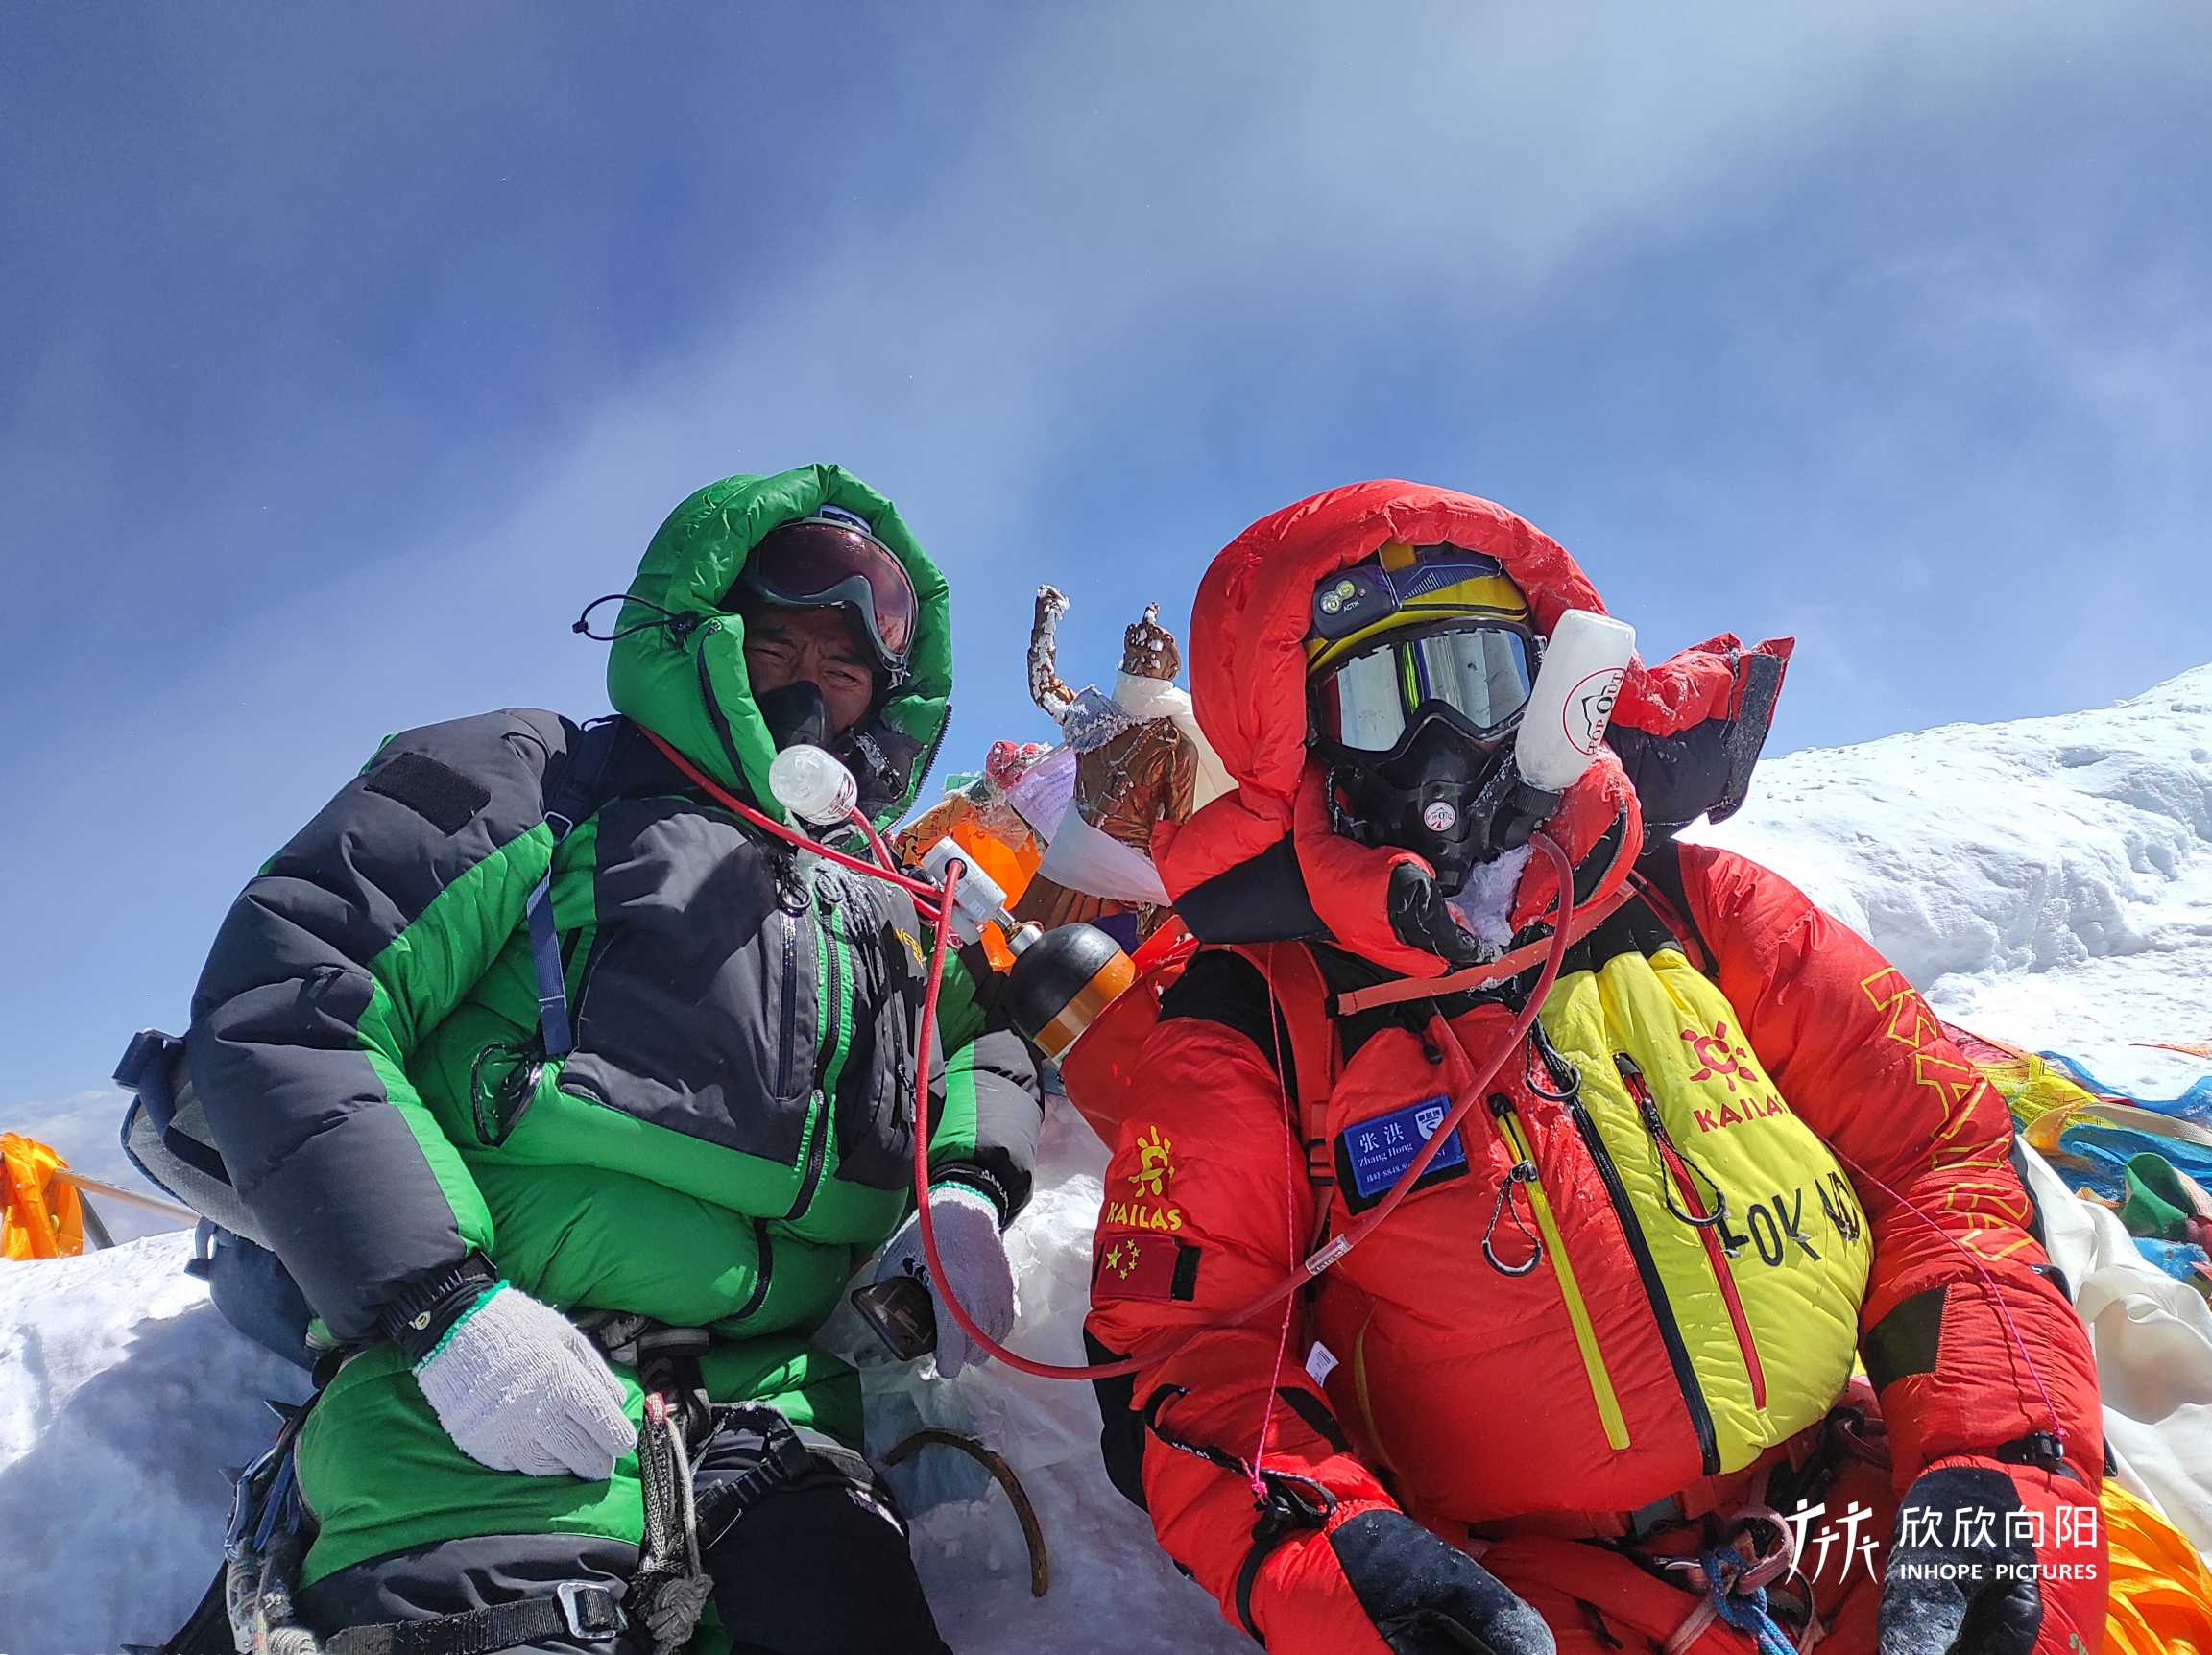 Two men wearing green and red coats stand amid a snowy Mount everest